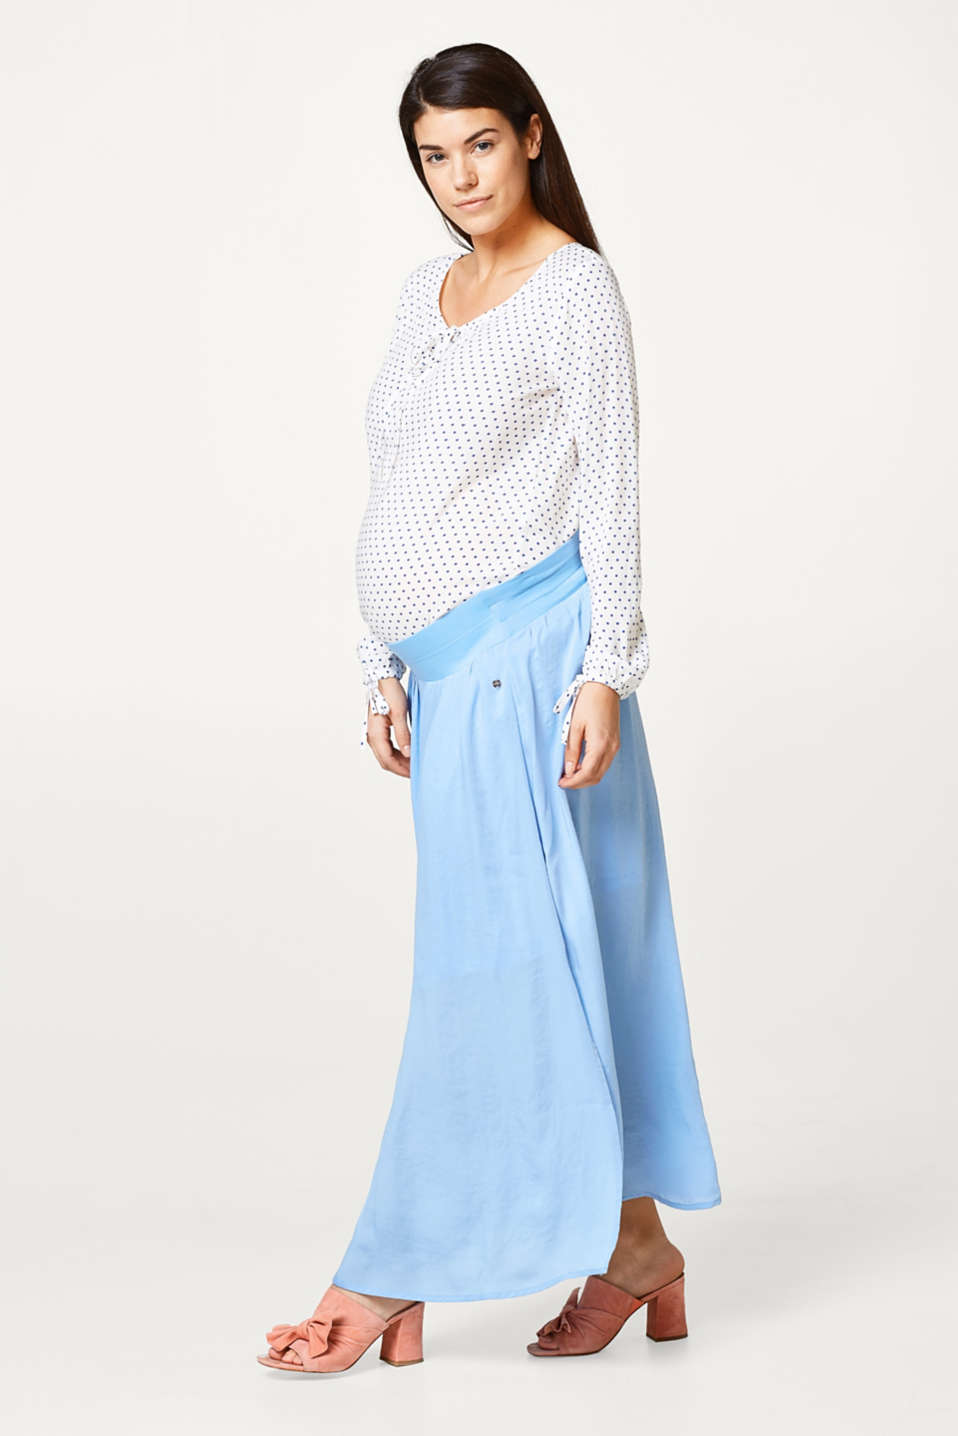 Esprit - Trendy maxi skirt, under-bump waistband